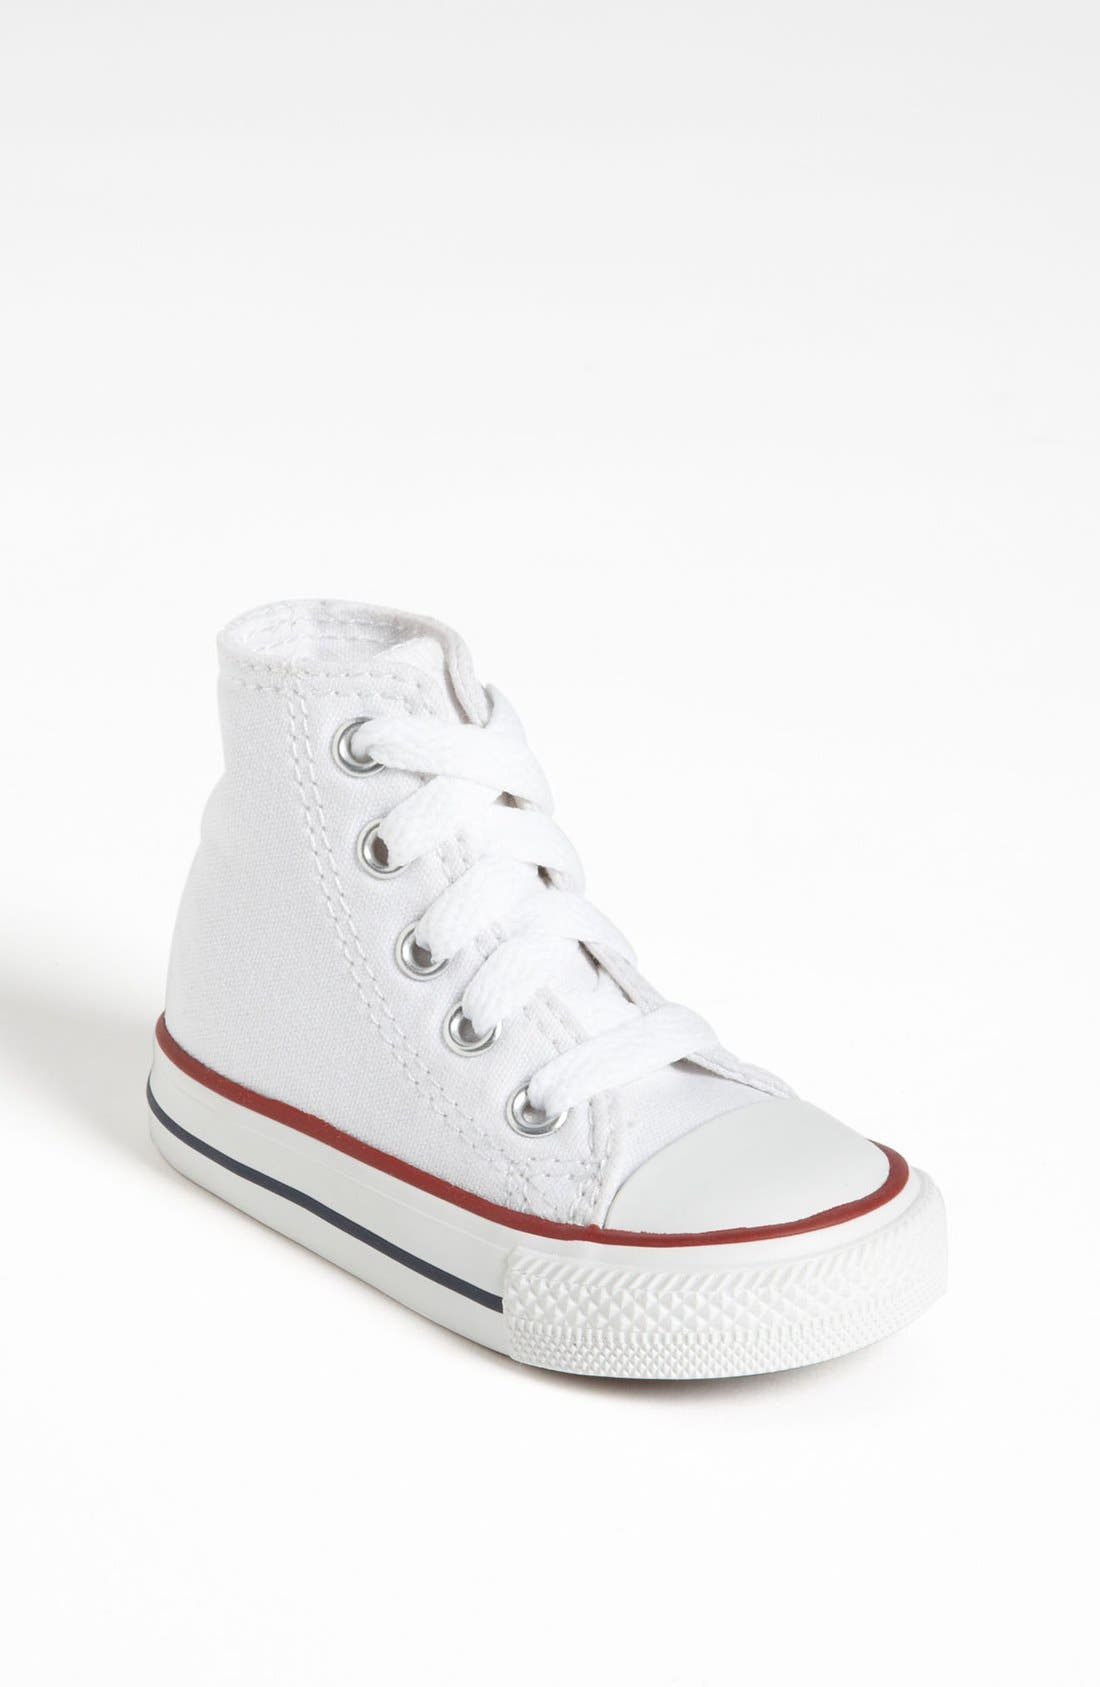 Main Image - Converse All Star® High Top Sneaker (Baby, Walker & Toddler